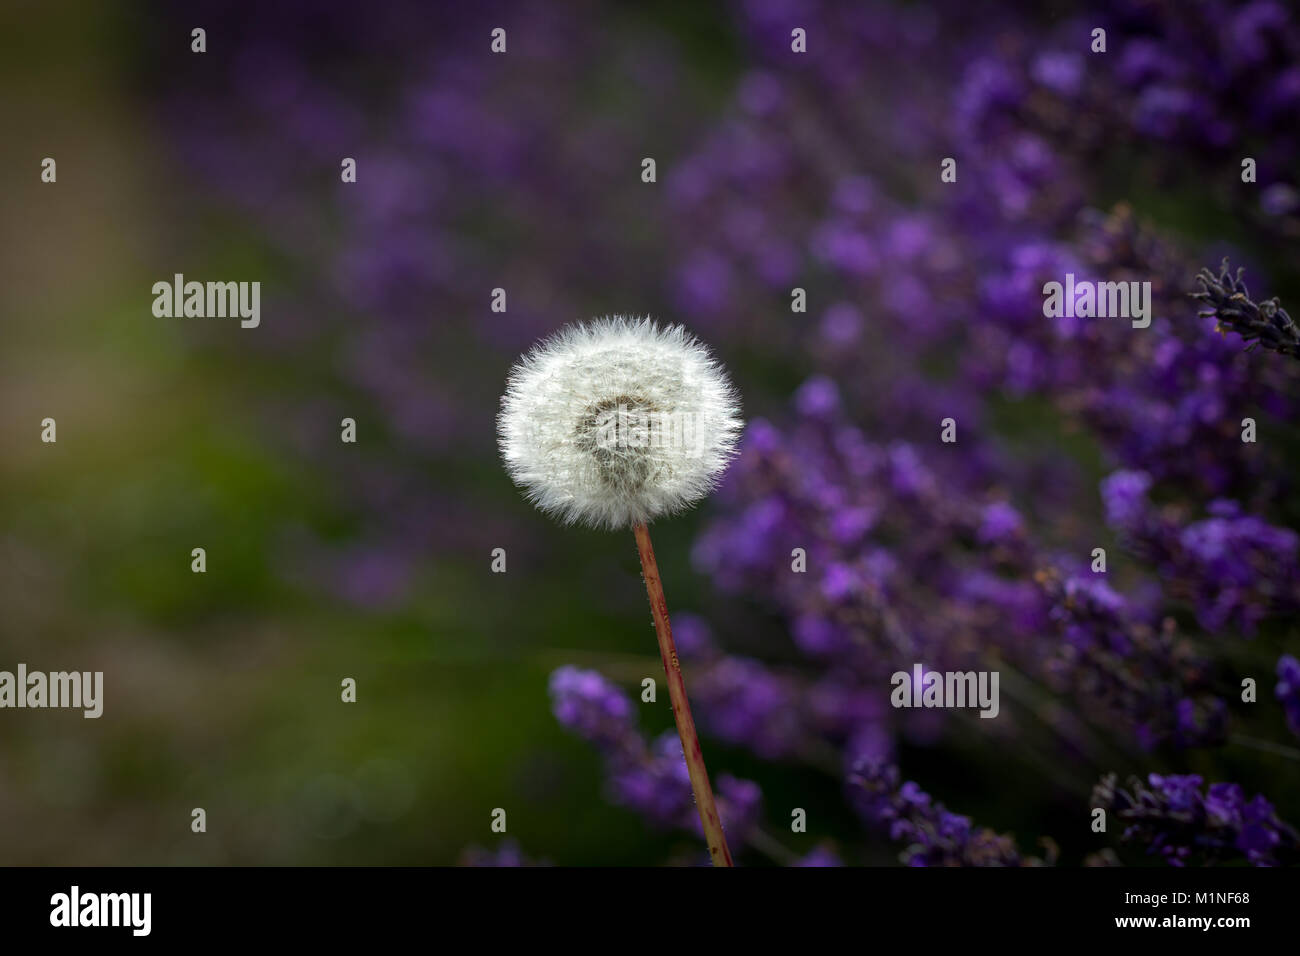 purple dandelion flower growing in stock photos & purple dandelion